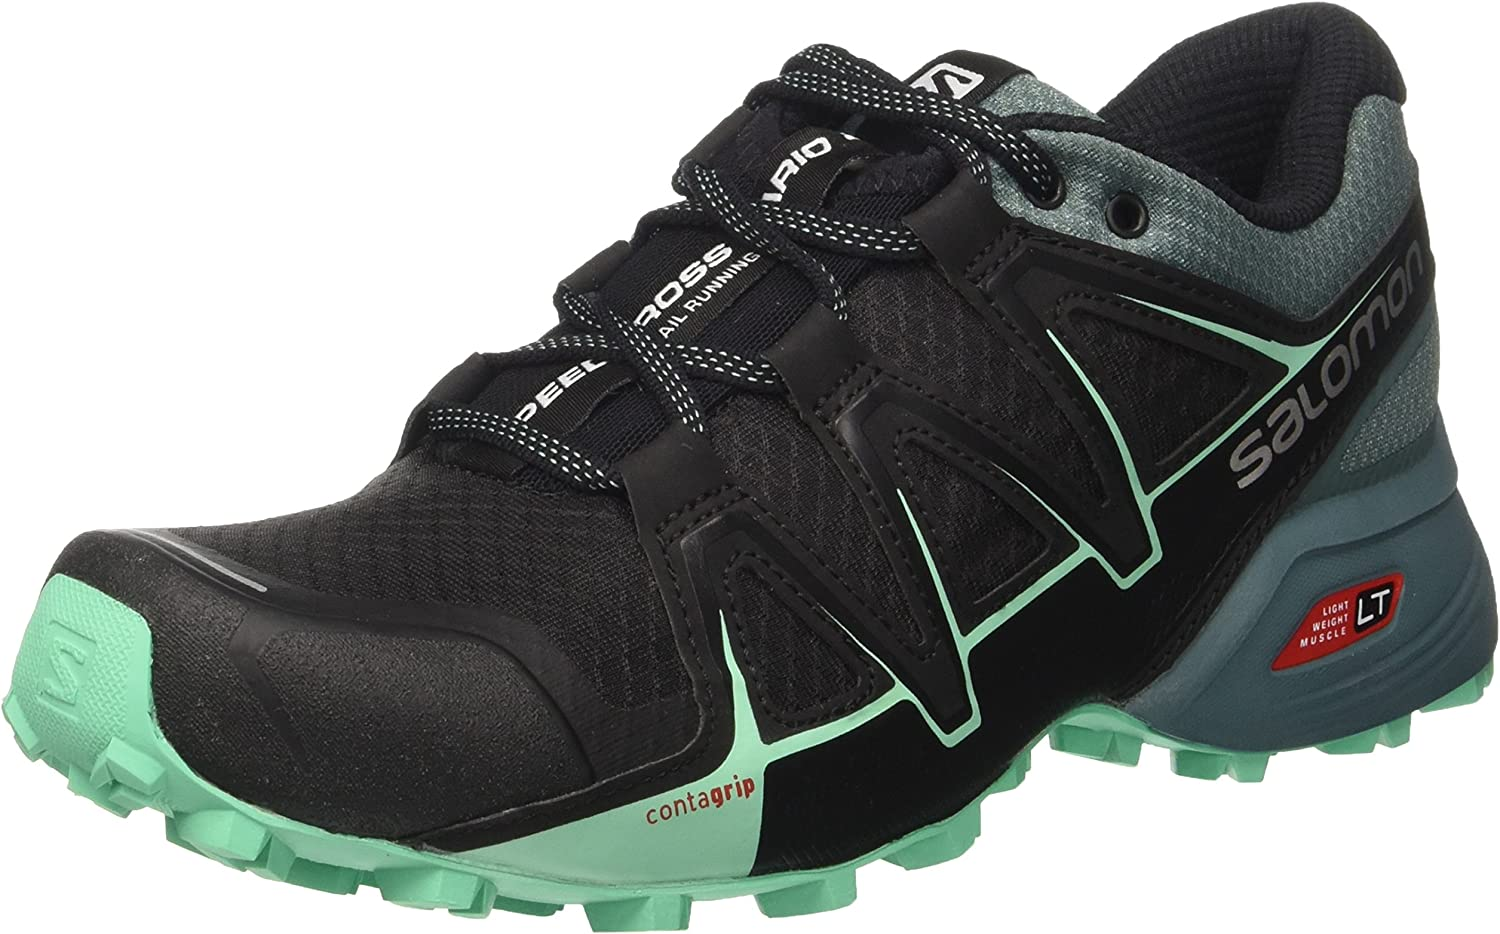 Salomon Speedcross Vario 2 W, Zapatillas de Running Mujer, Negro (Black/North Atlant/Biscay Green 000), 45 1/3 EU: Amazon.es: Zapatos y complementos